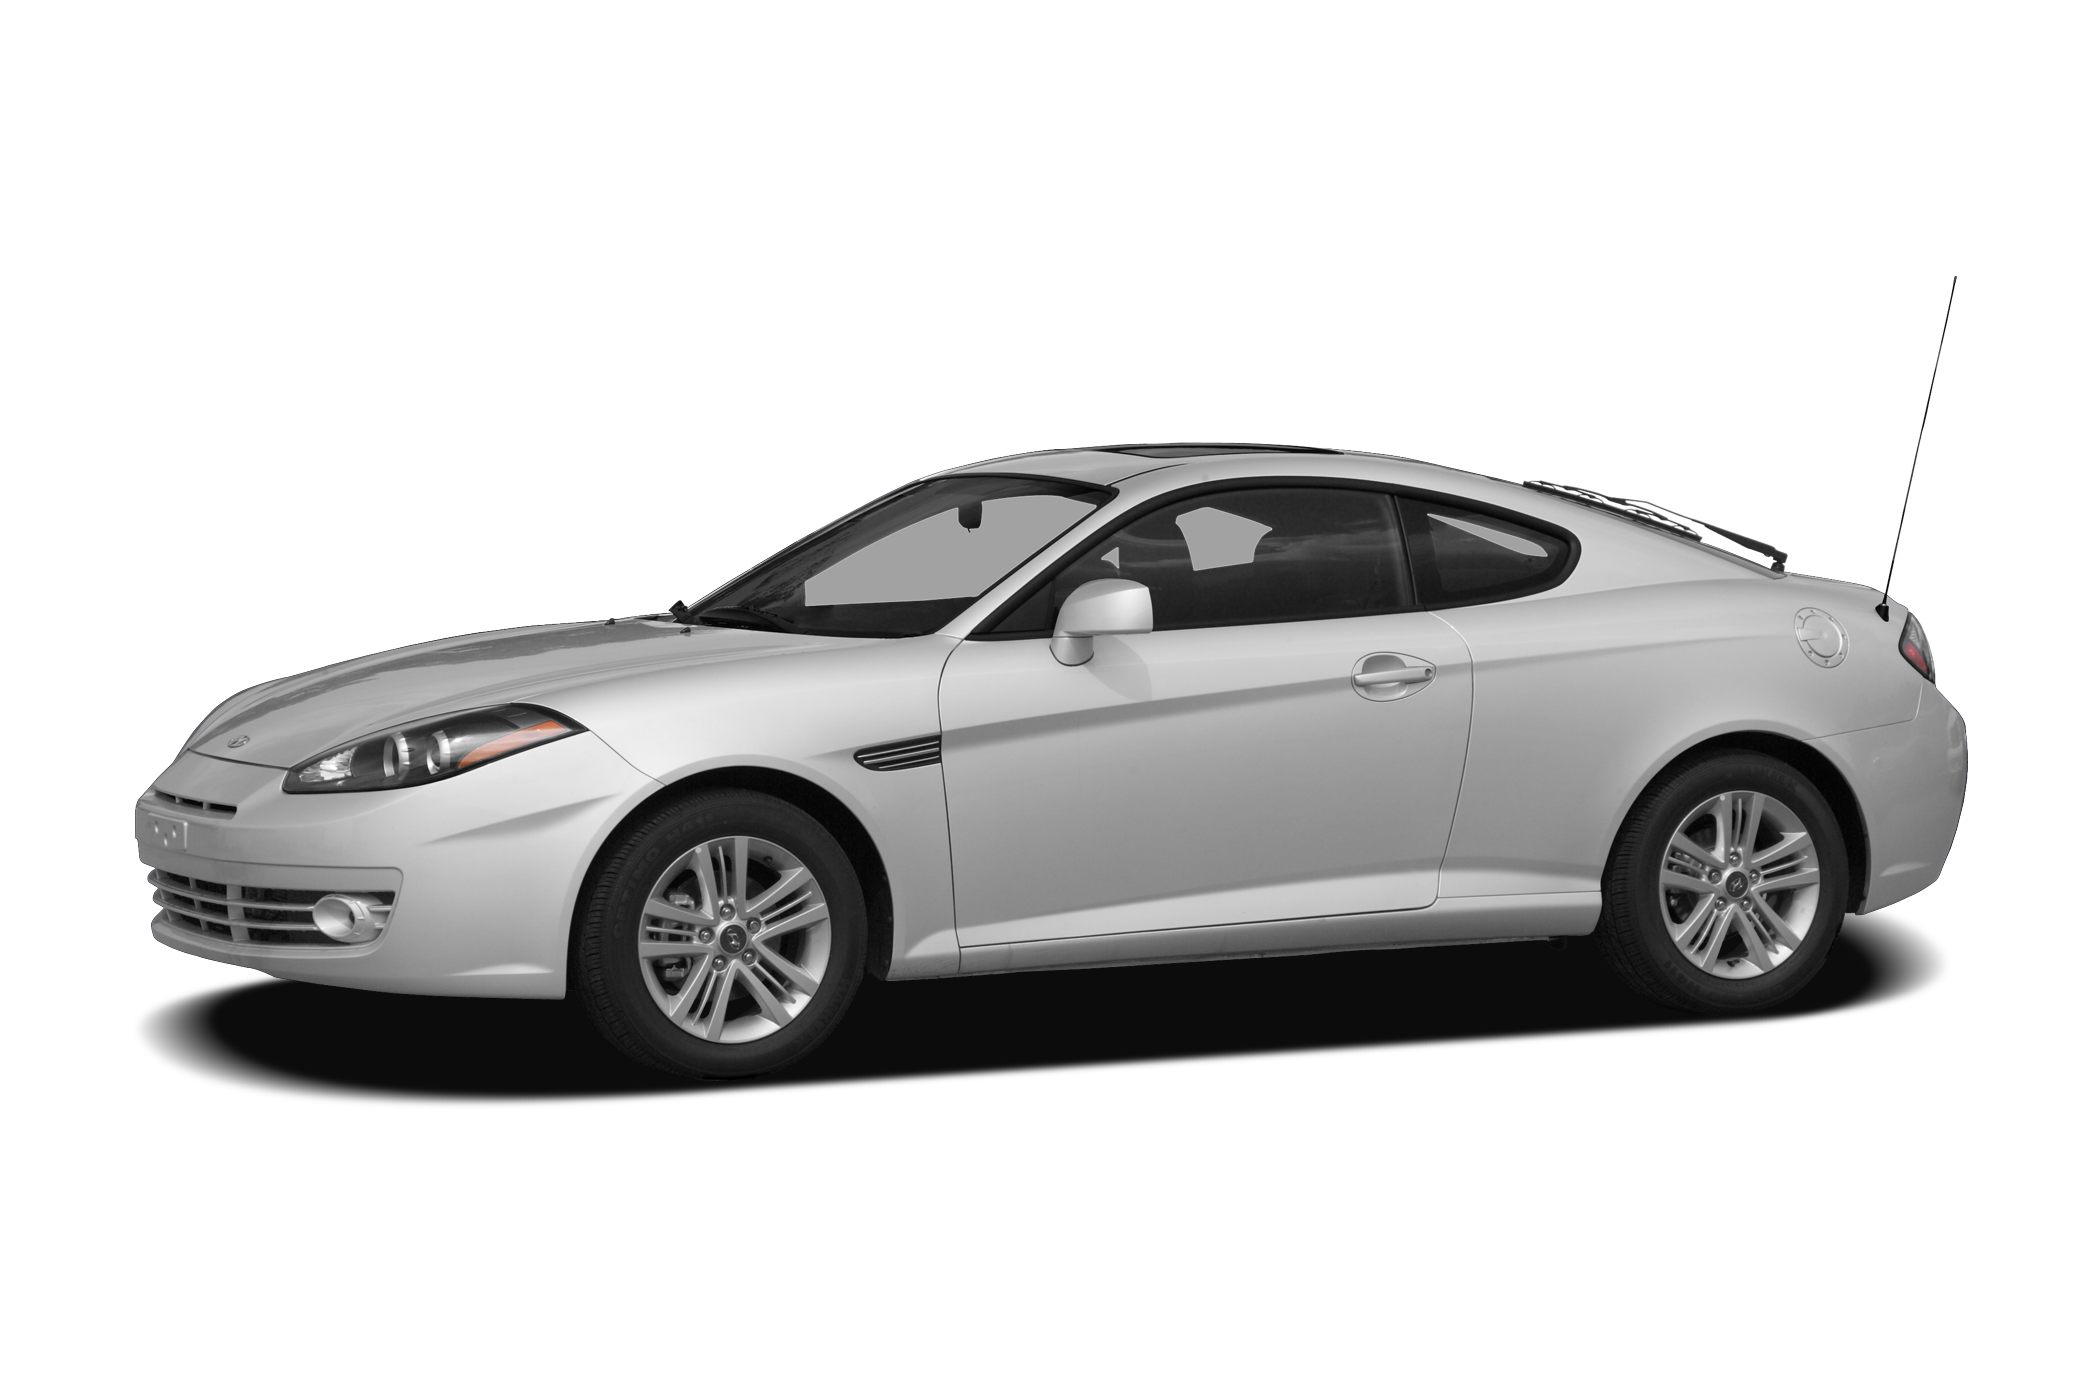 Cars for Sale Near Me Under 3000 Lovely Used Cars Near Me Under 3000 Best Of Pflugerville Tx Used Cars for